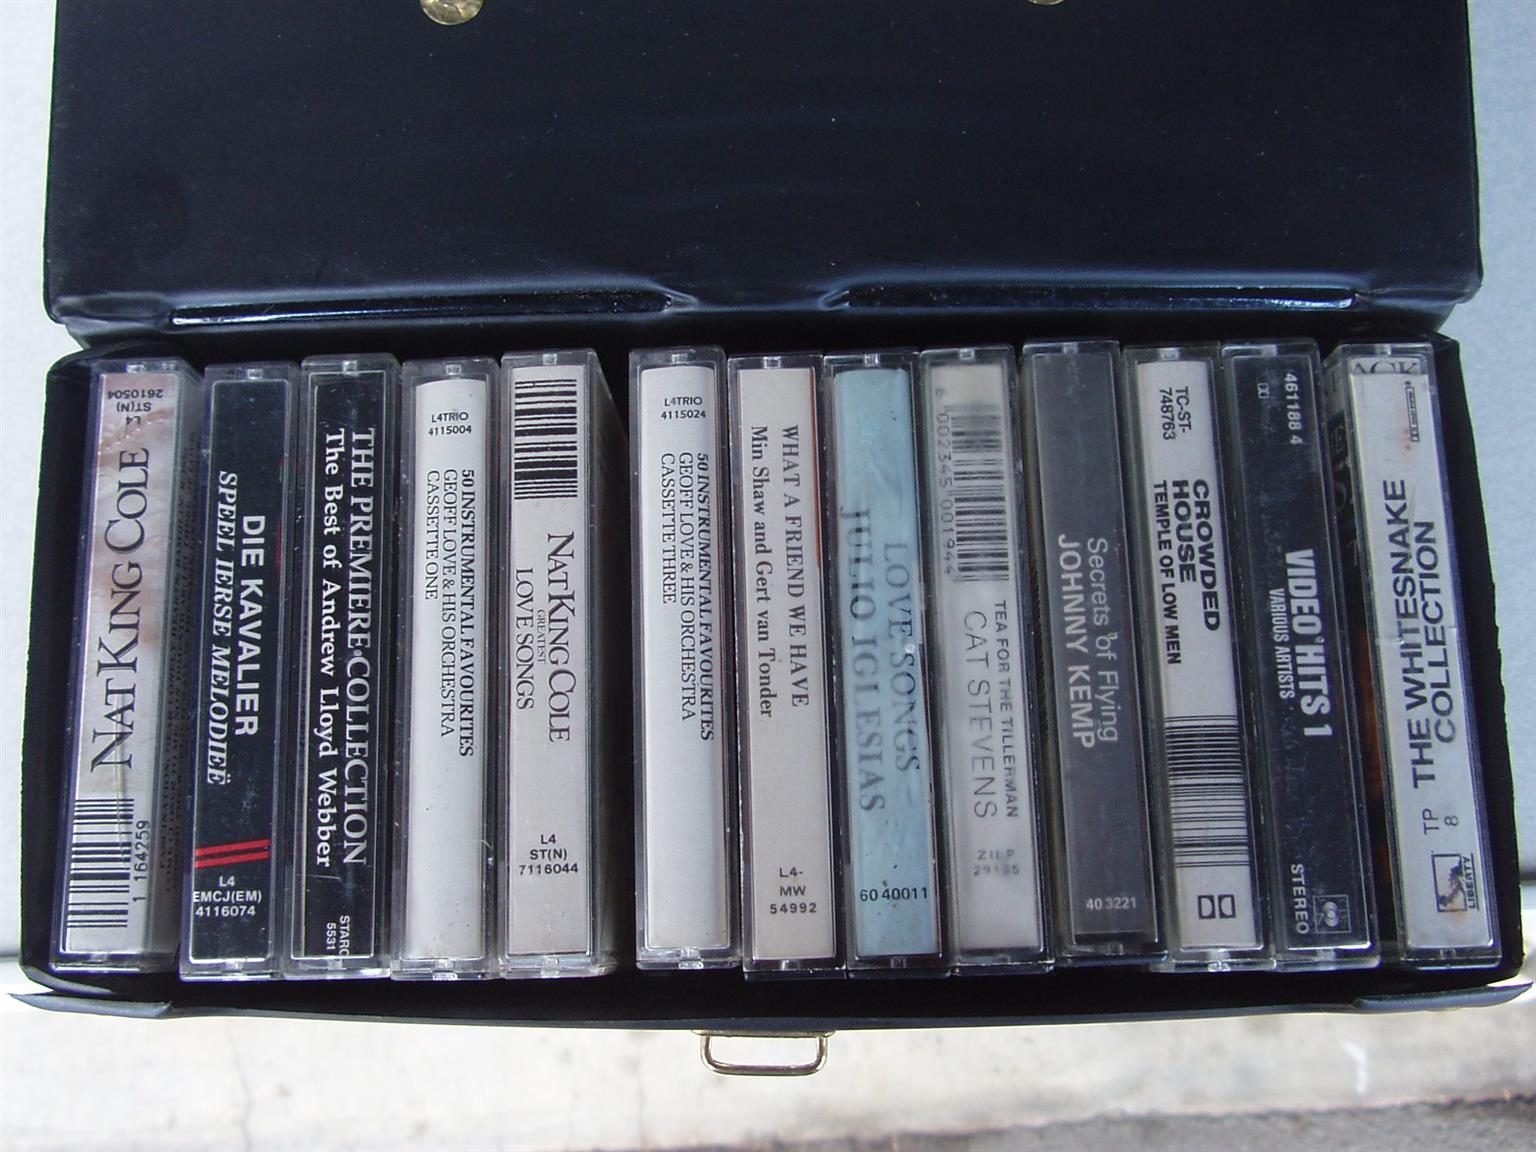 Music Cassettes - 13 cassettes in case